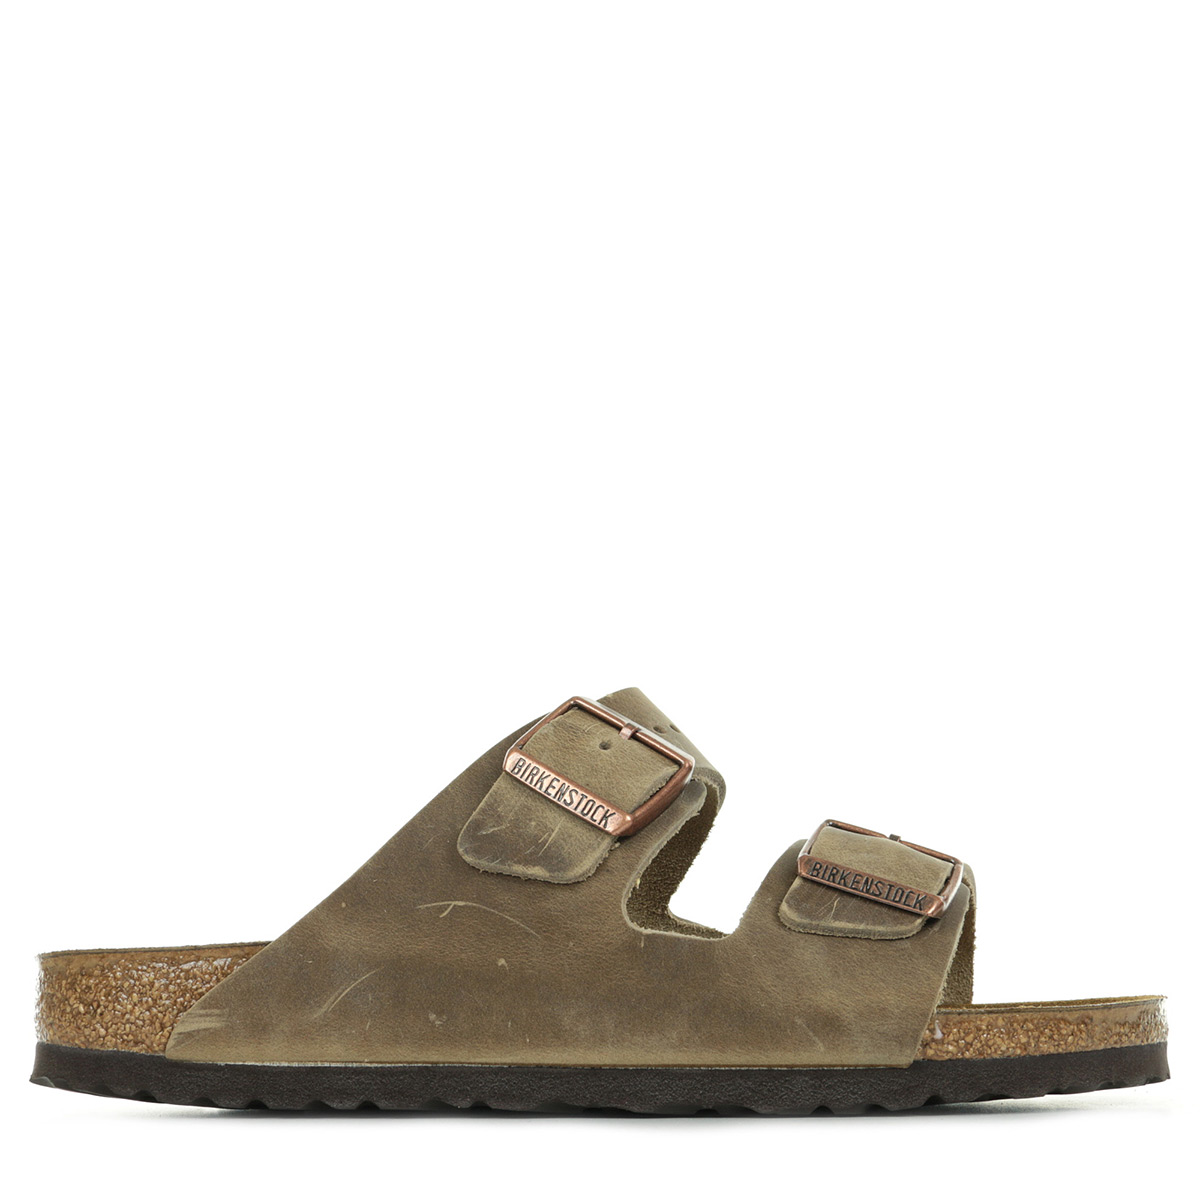 Sandales Nu Pieds Birkenstock homme Arizona Bs taille Marron Cuir A boucles